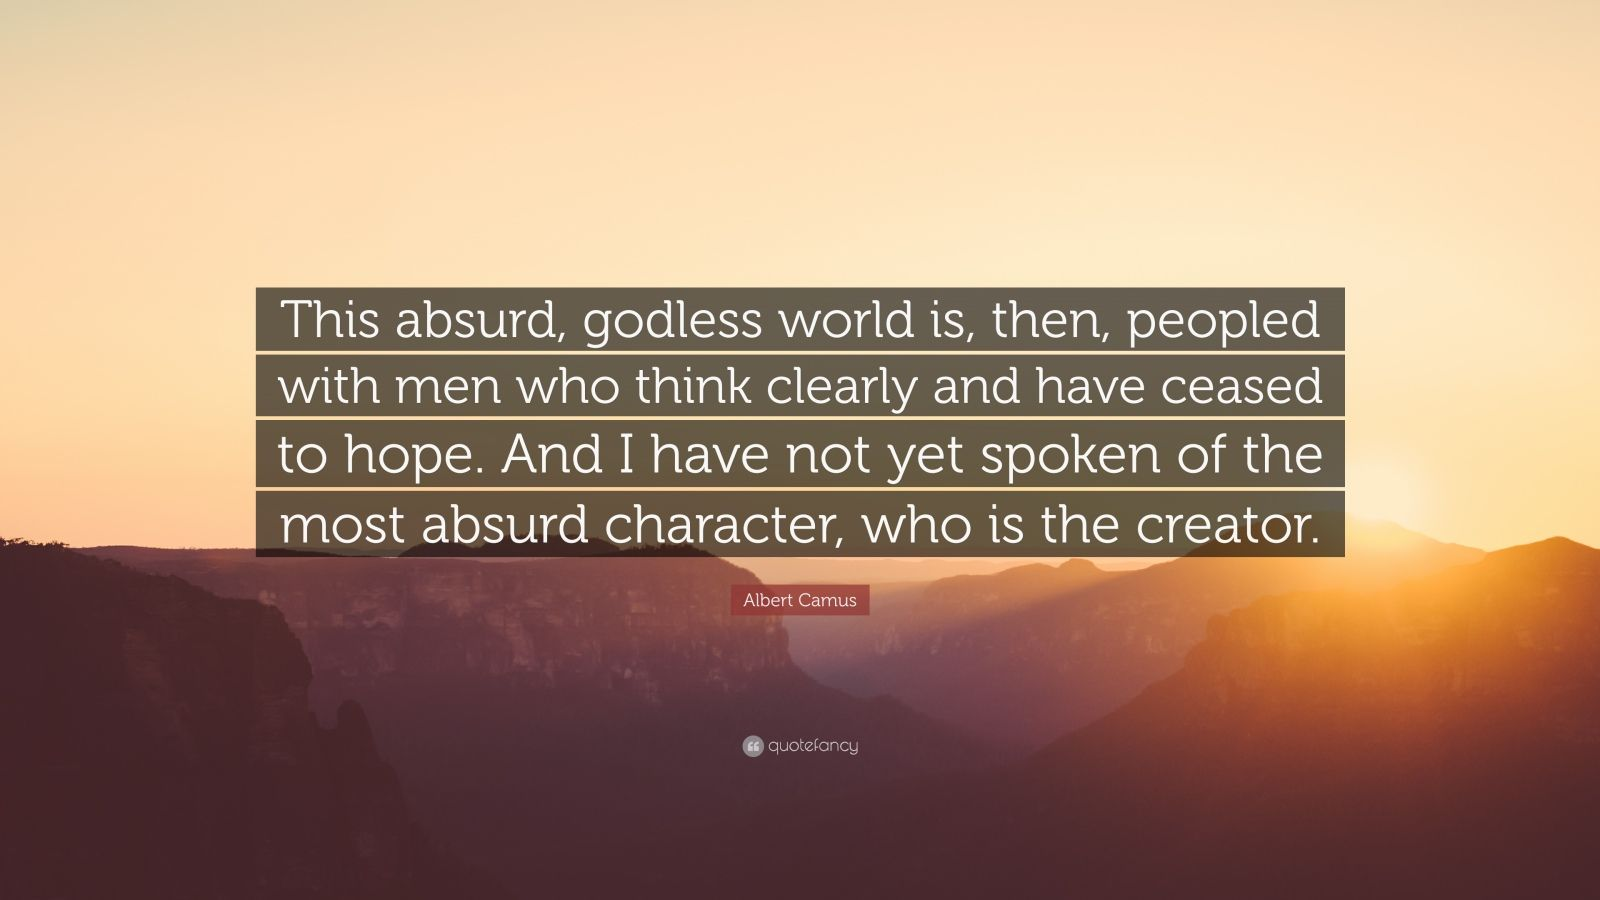 """Albert Camus Quote: """"This absurd, godless world is, then, peopled with men who think clearly and have ceased to hope. And I have not yet spoken of the most absurd character, who is the creator."""""""